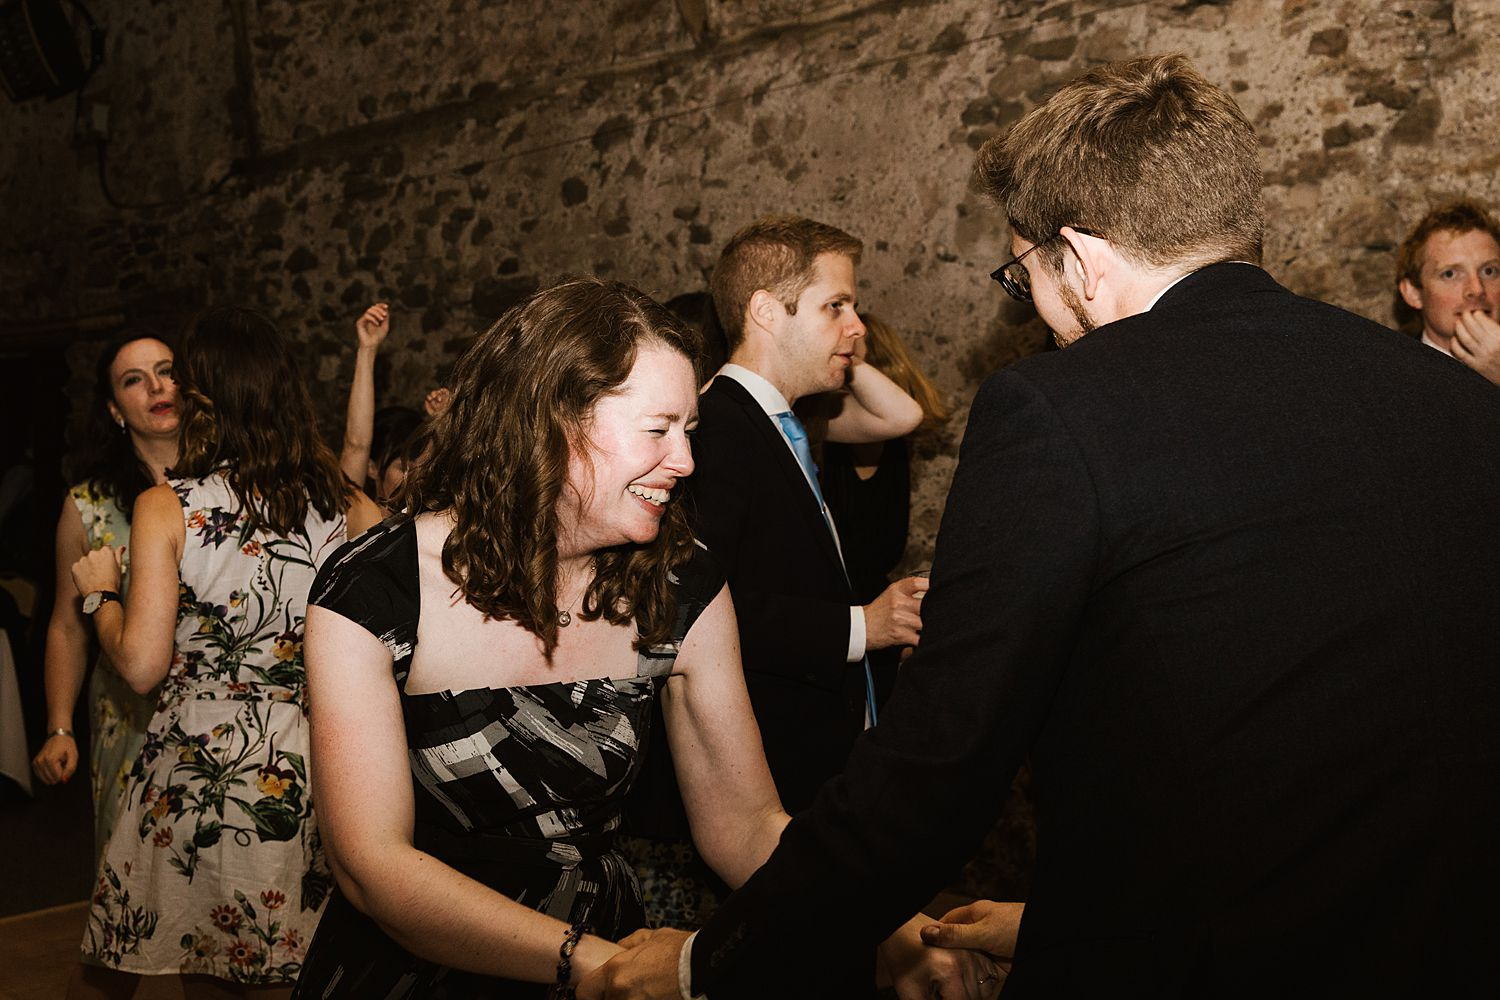 Guests dancing, enjoying evening reception at Sough Lakes wedding venue, Park House Barn